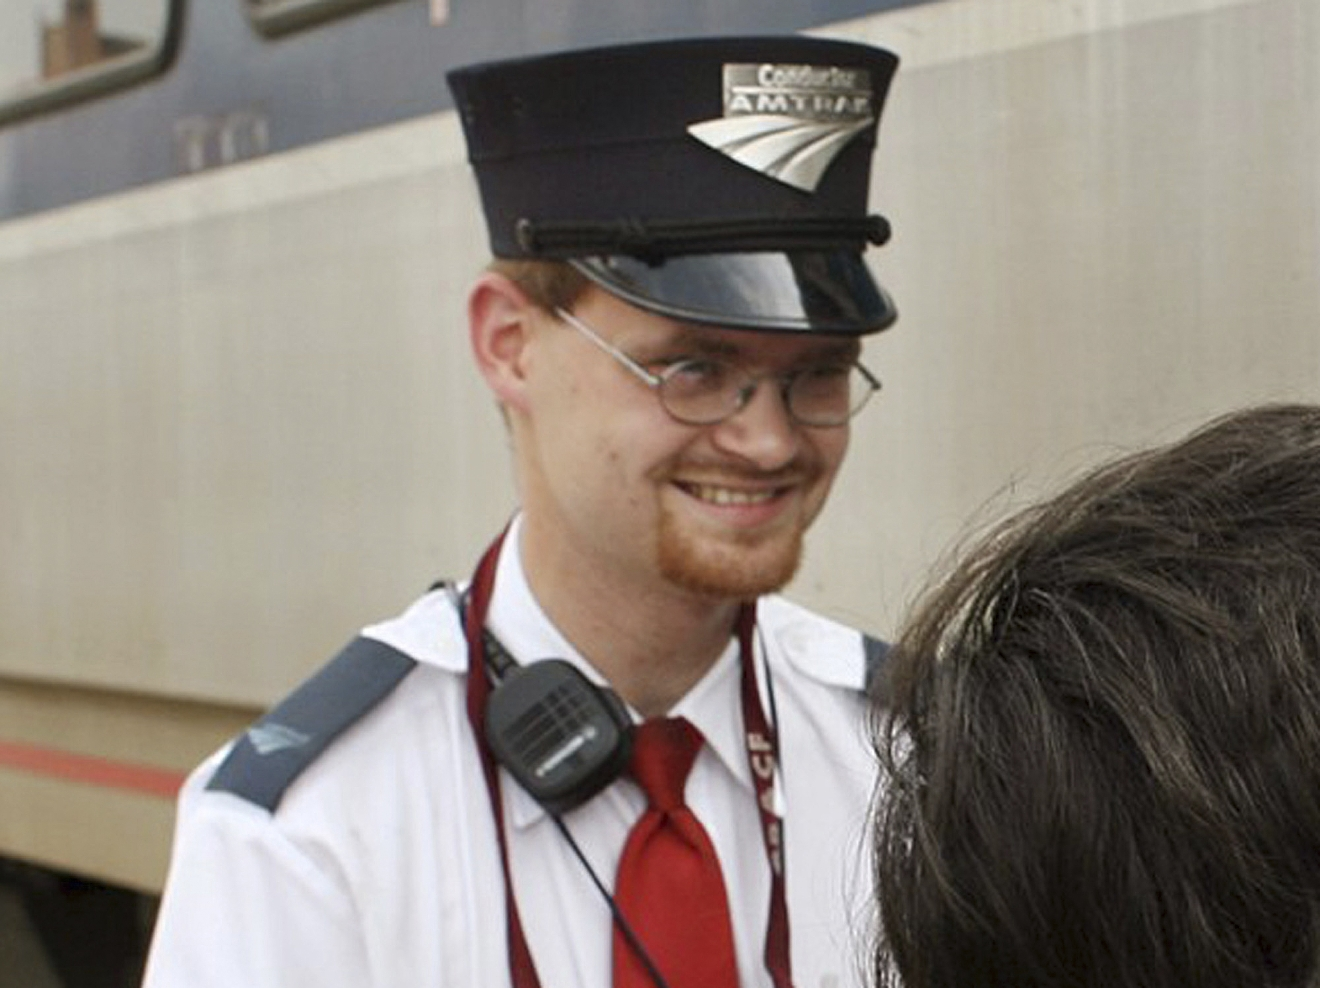 FILE - This Aug. 21, 2007 file photo shows Amtrak assistant conductor Brandon Bostian outside a train at the Amtrak station in St. Louis. Bostian was the engineer during the fatal May 12, 2015 Amtrak passenger train derailment in Philadelphia. The National Transportation Safety Board is scheduled to meet Tuesday, May 17, 2016, to detail the probable cause of last year's fatal derailment. (Huy Richard Mach/St. Louis Post-Dispatch via AP, File) EDWARDSVILLE INTELLIGENCER OUT; THE ALTON TELEGRAPH OUT; MANDATORY CREDIT